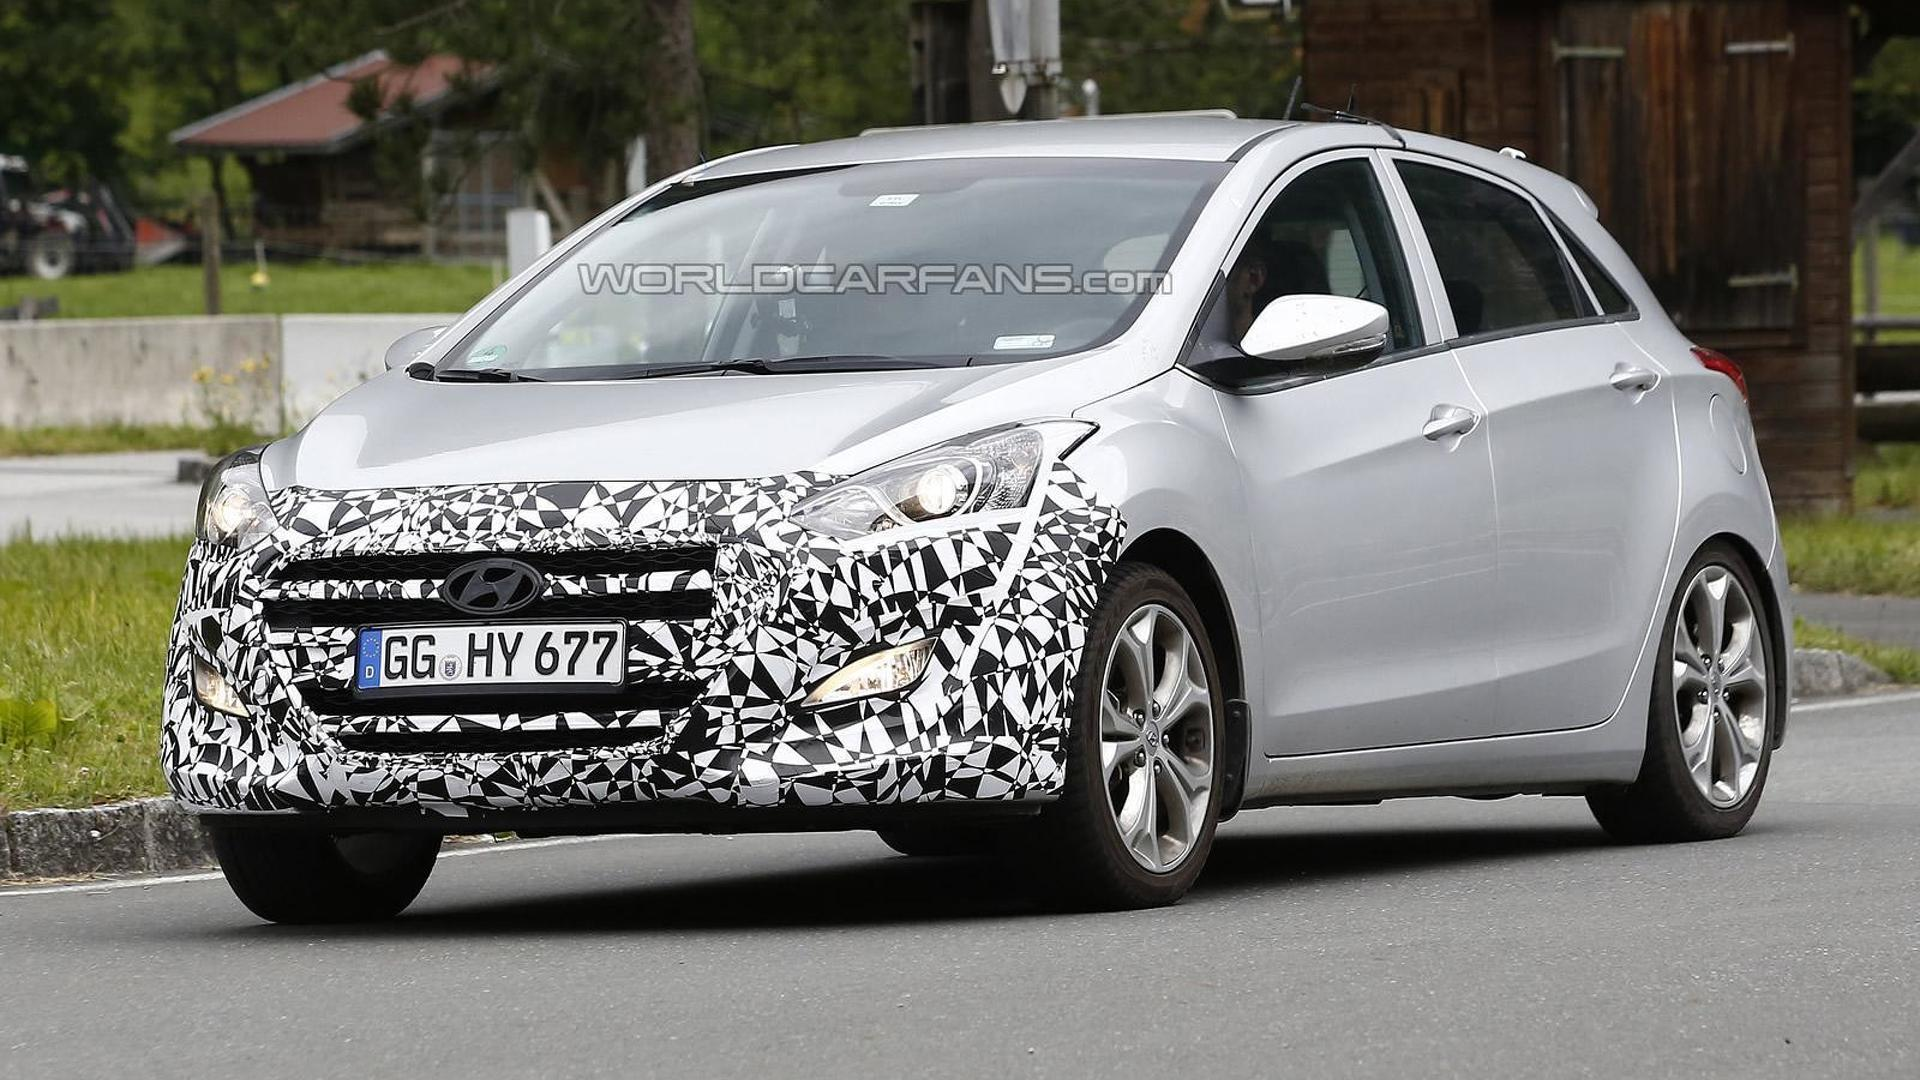 2015 Hyundai i30 facelift spied testing in Europe